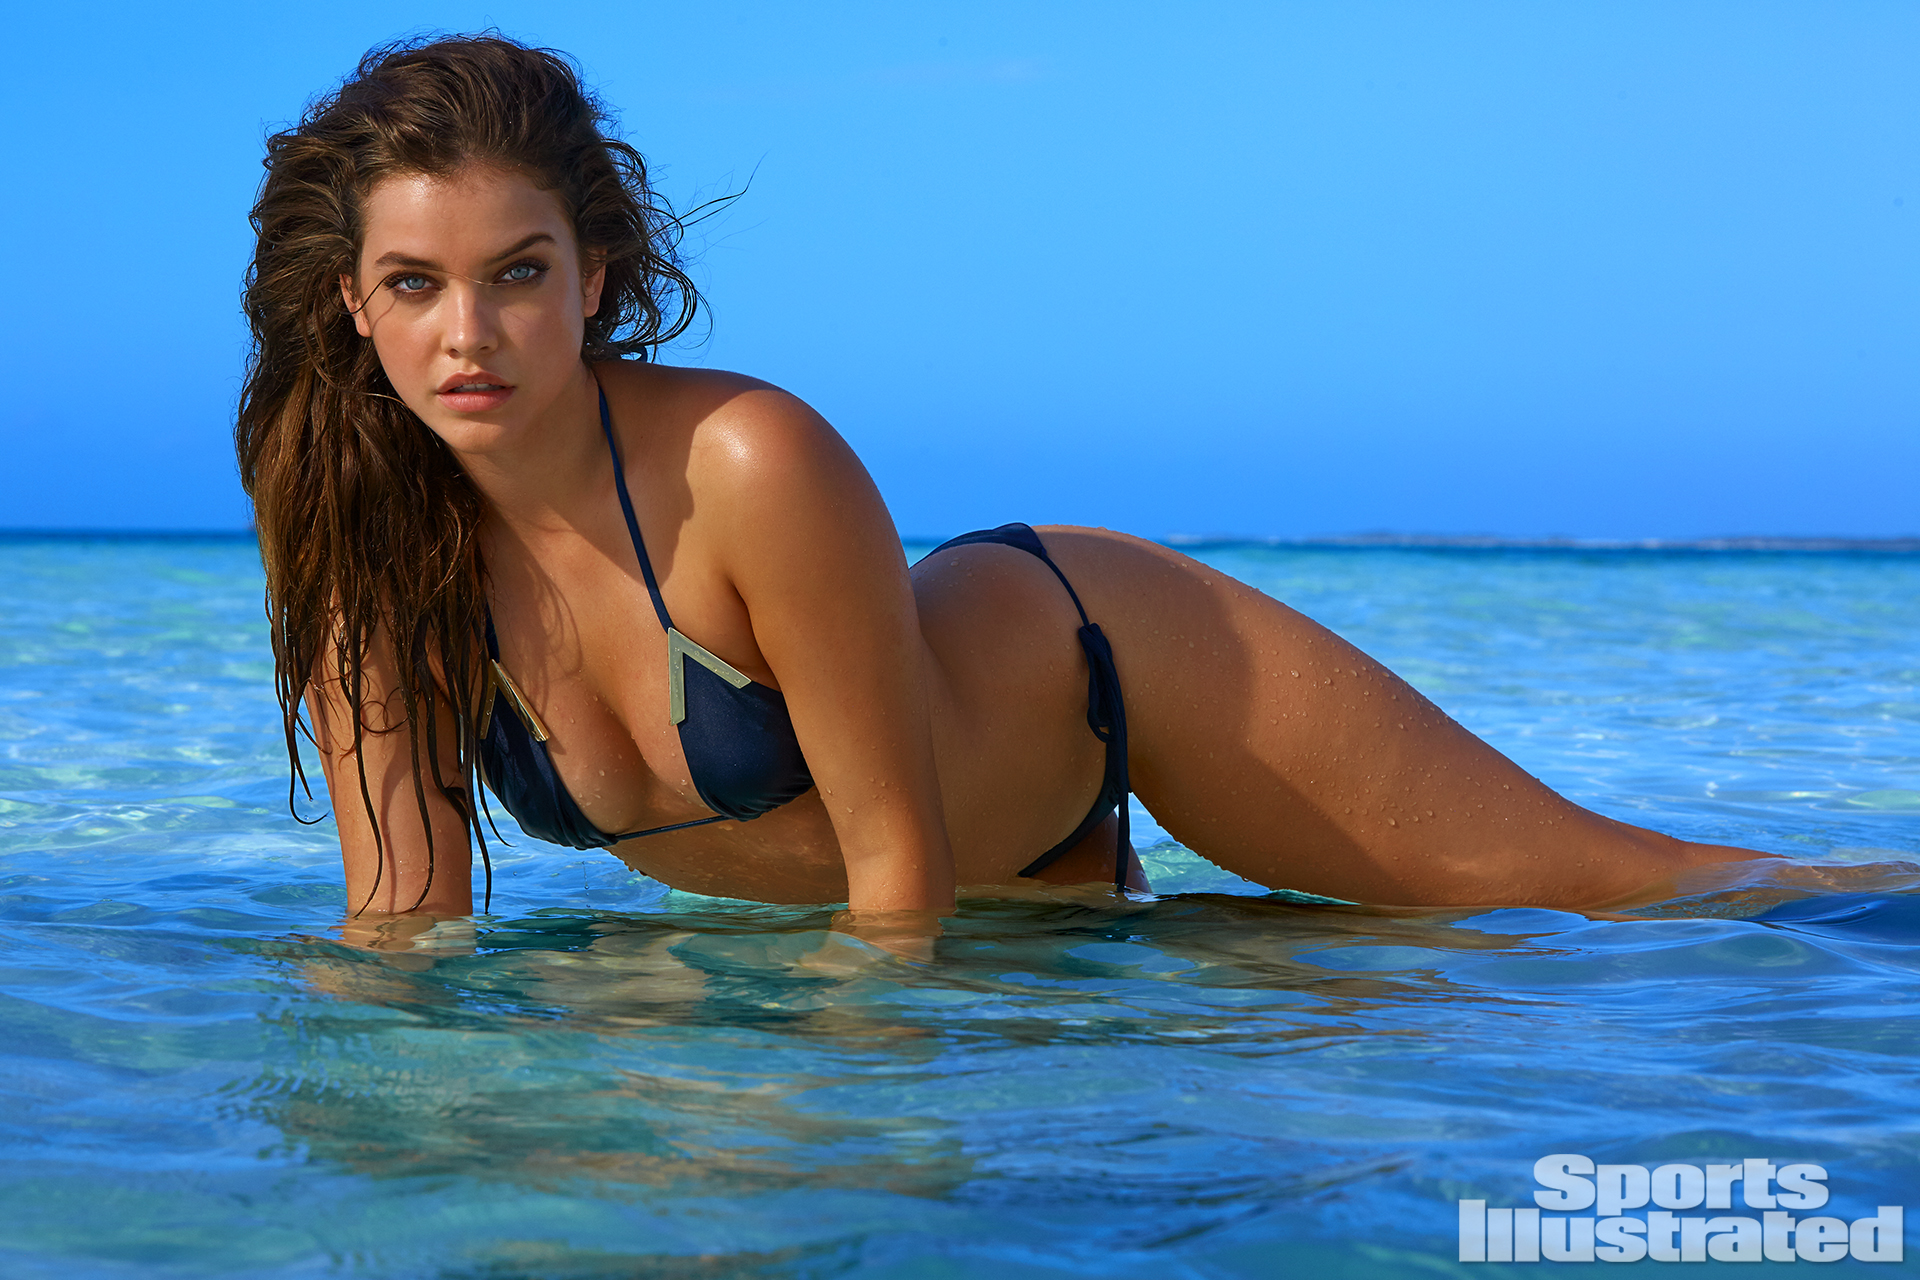 Barbara Palvin was photographed by James Macari in Turks & Caicos. Swimsuit by BEACH RIOT By NICOLE HANRIOT.